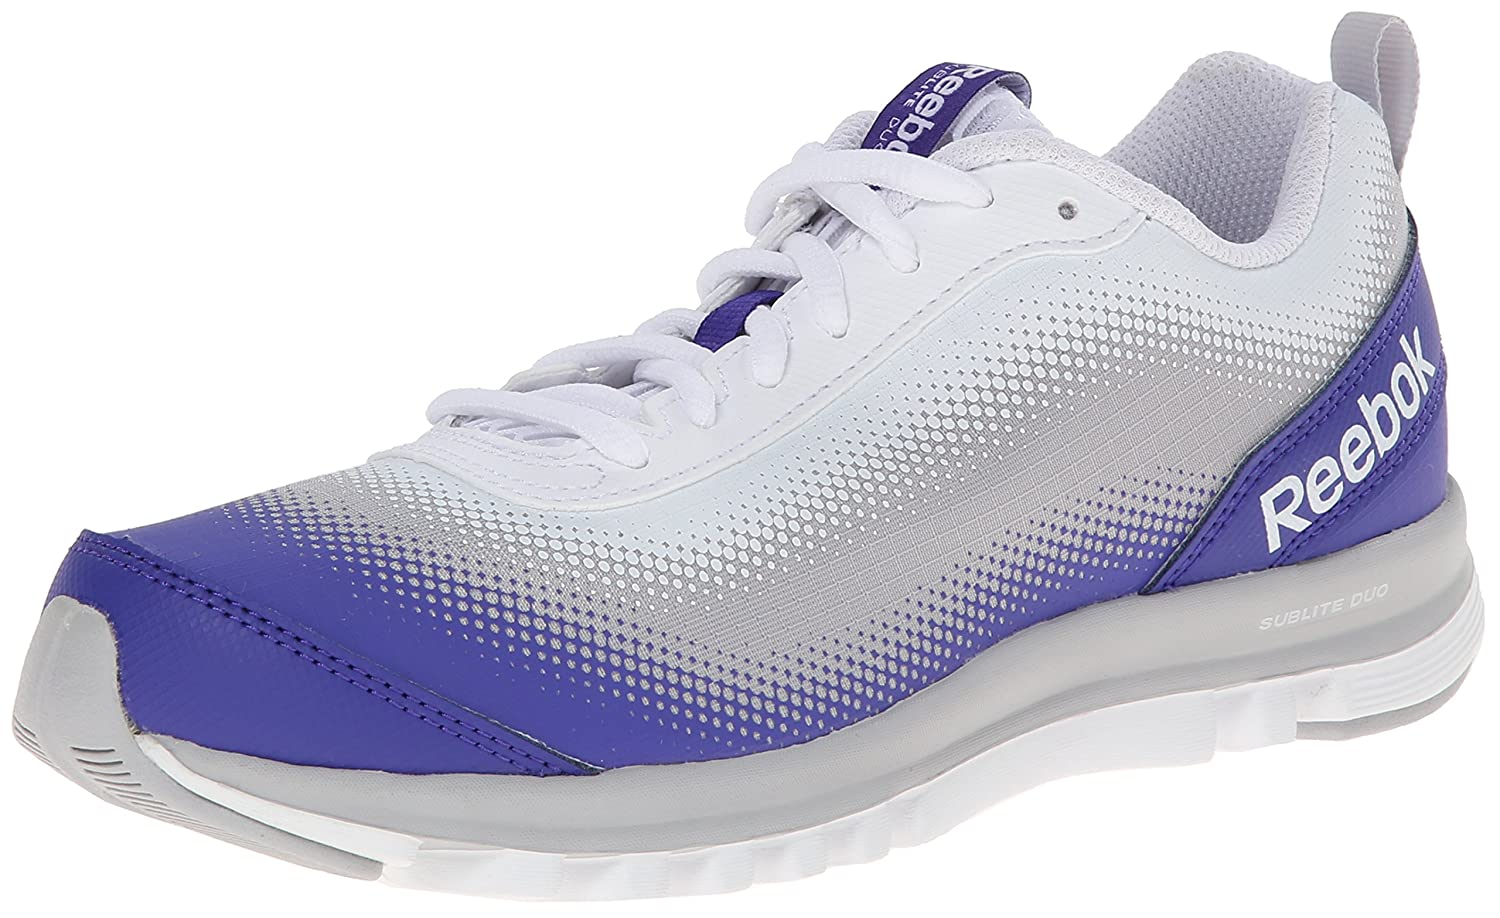 a0ed73ebcc6f4 Amazon.com   Reebok Women s Sublite Duo Quest Running Shoe, Ultima  Purple White Steel, 8.5 M US   Road Running